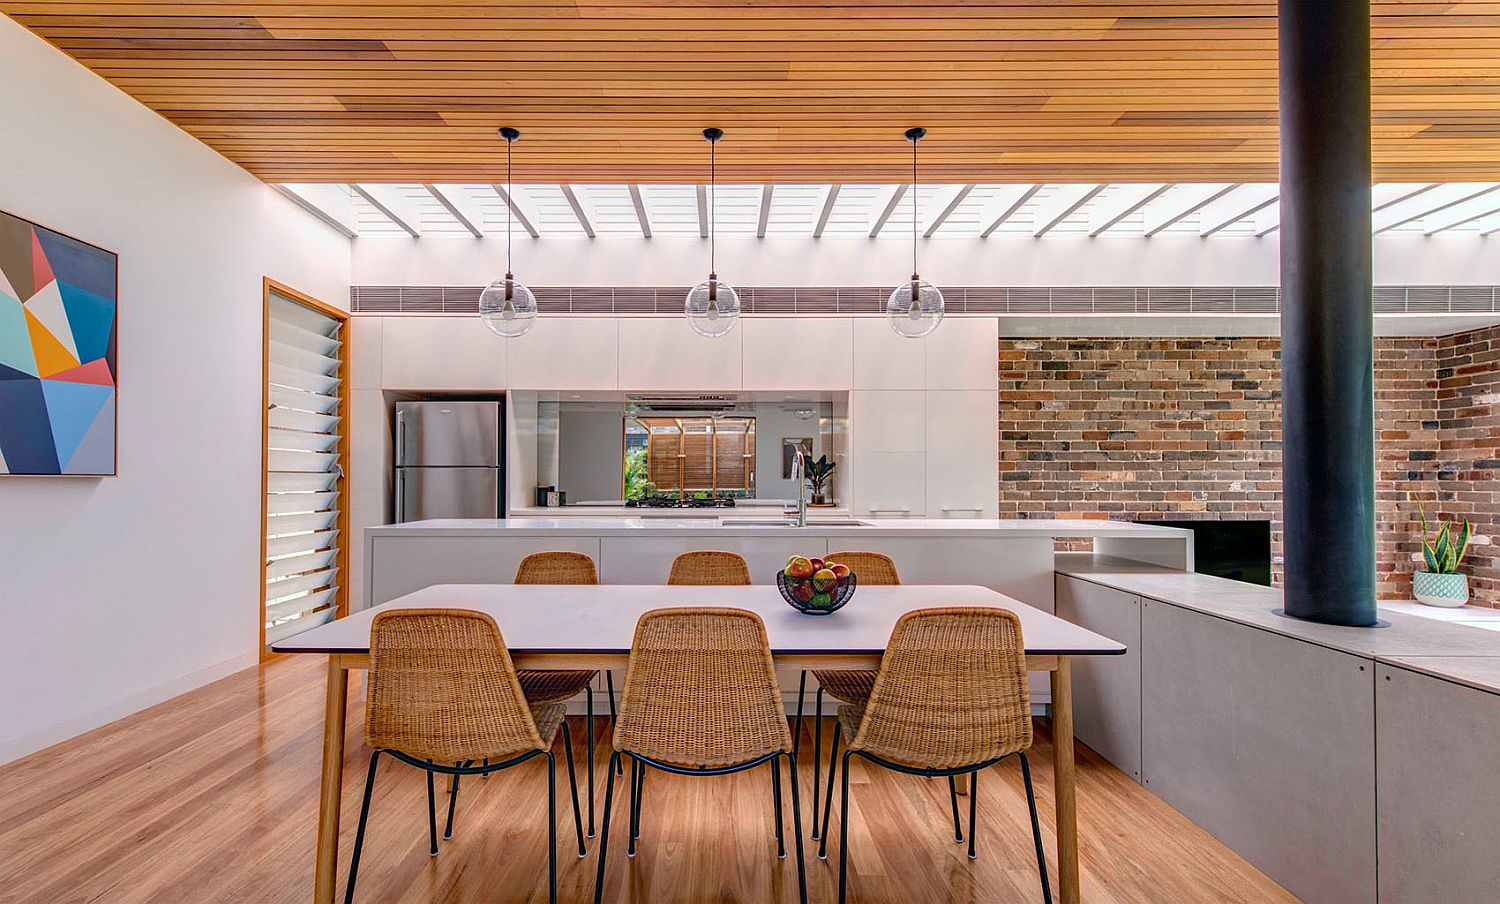 Skylight brings plenty of natural task lighting into the kitchen